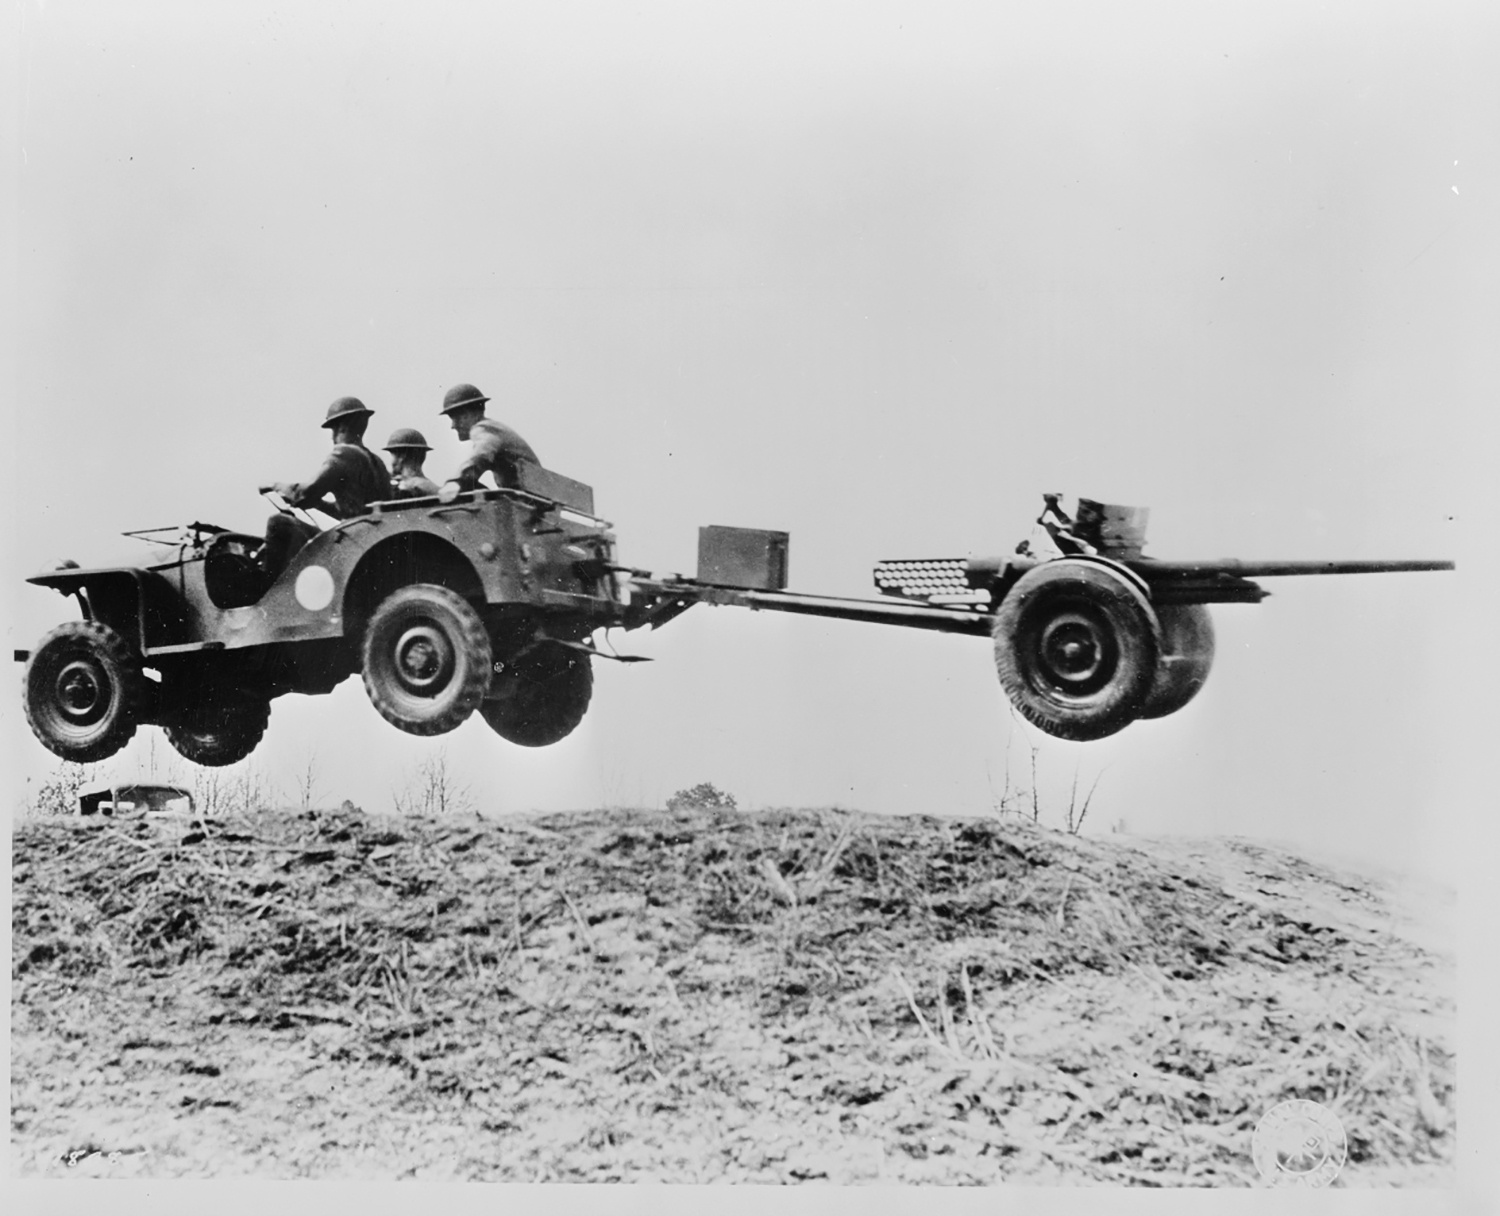 Rigorous testing at Camp Holabird in Maryland proved that the prototype Bantam Reconnaissance Car could perform like a horse and even tow field artillery over the roughest terrain. Courtesy of the Library of Congress.